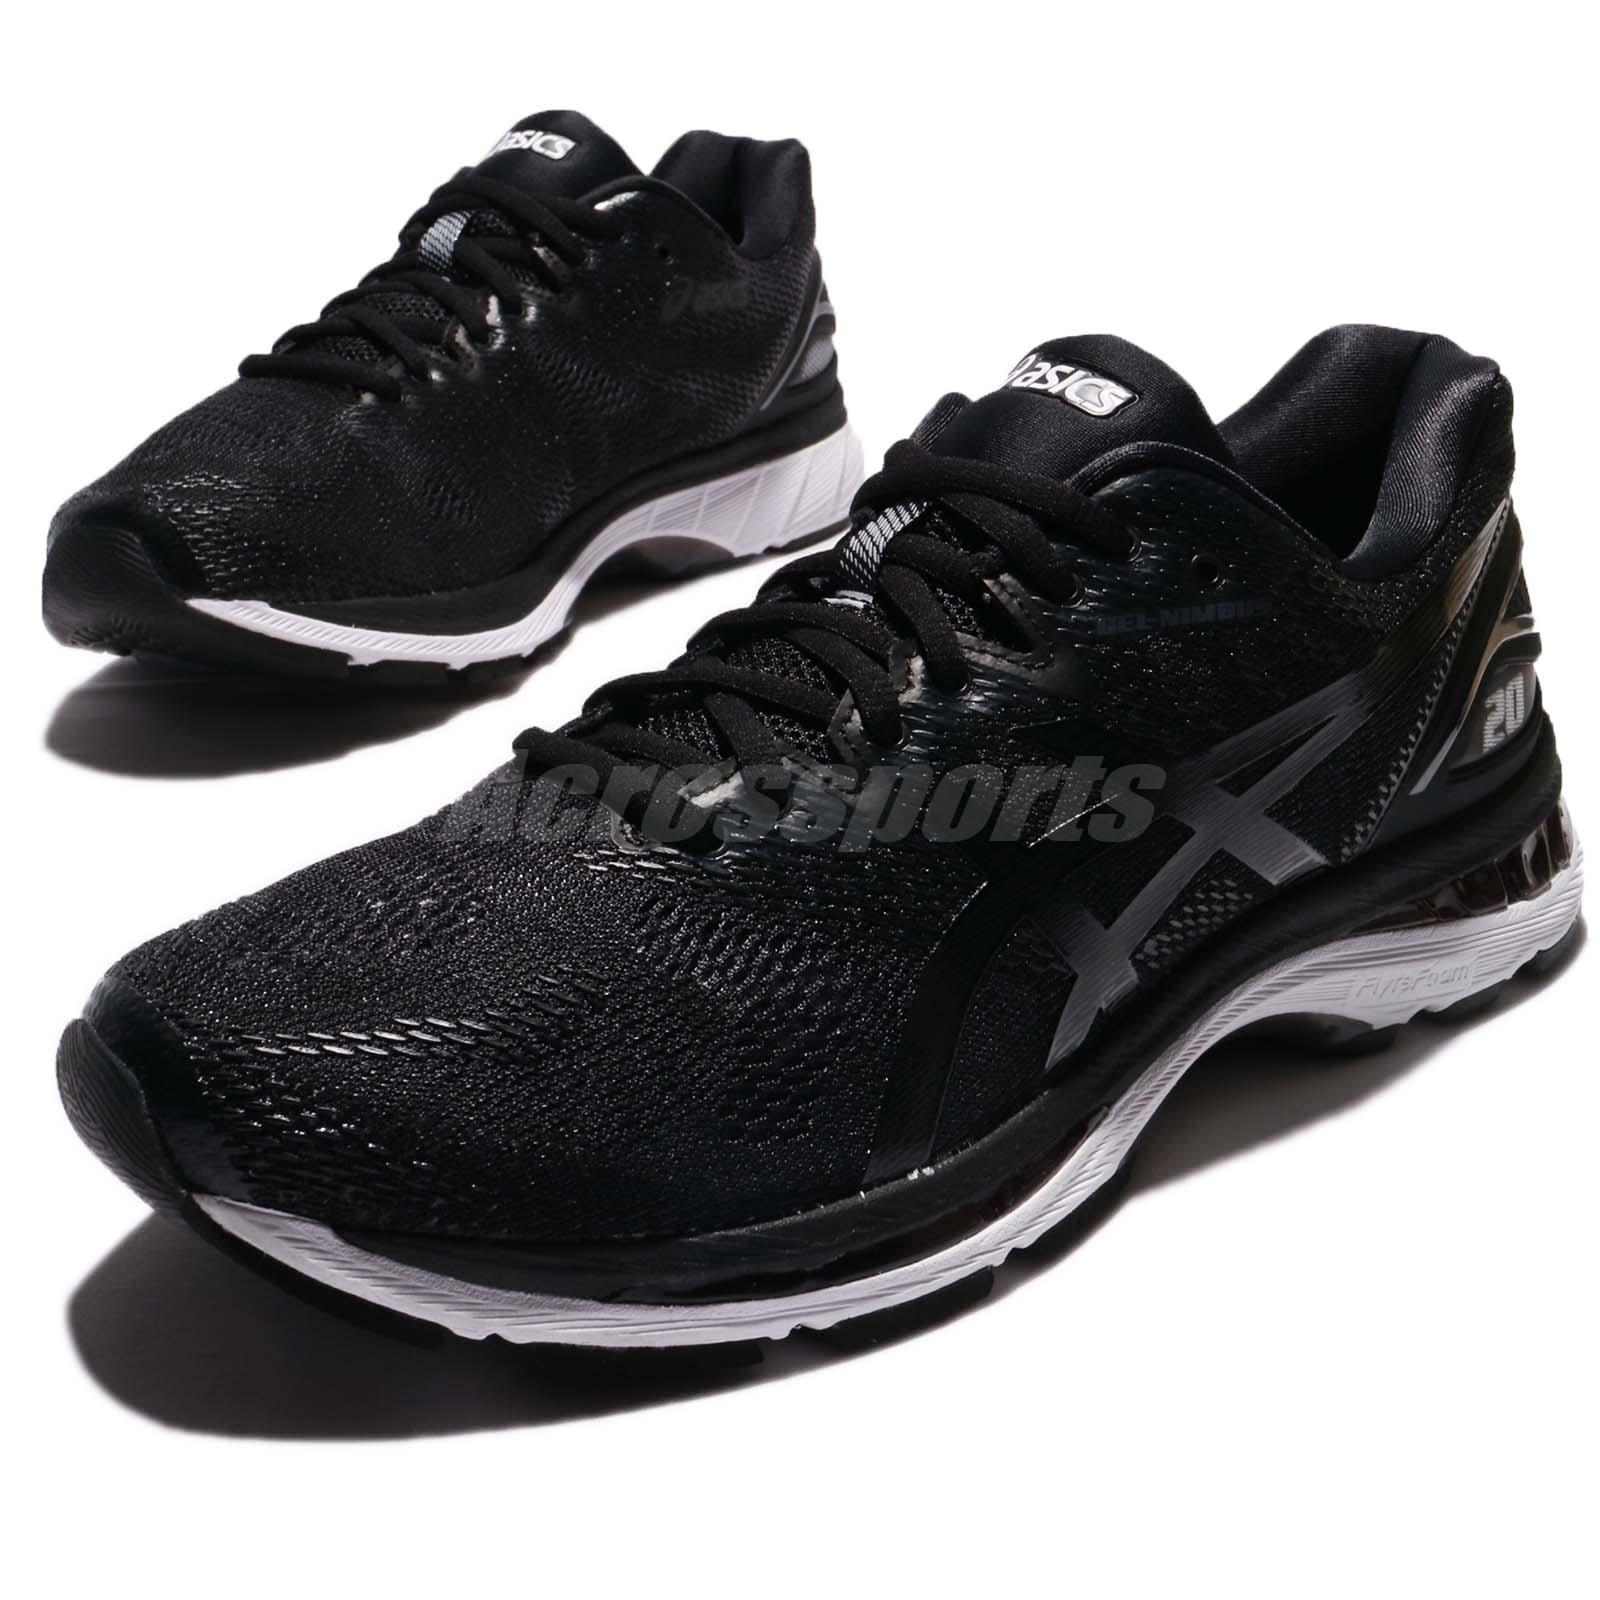 28c66d9eee7 Details about Asics Gel-Nimbus 20 4E Extra Wide Black White Men Running  Shoes T802N-9001